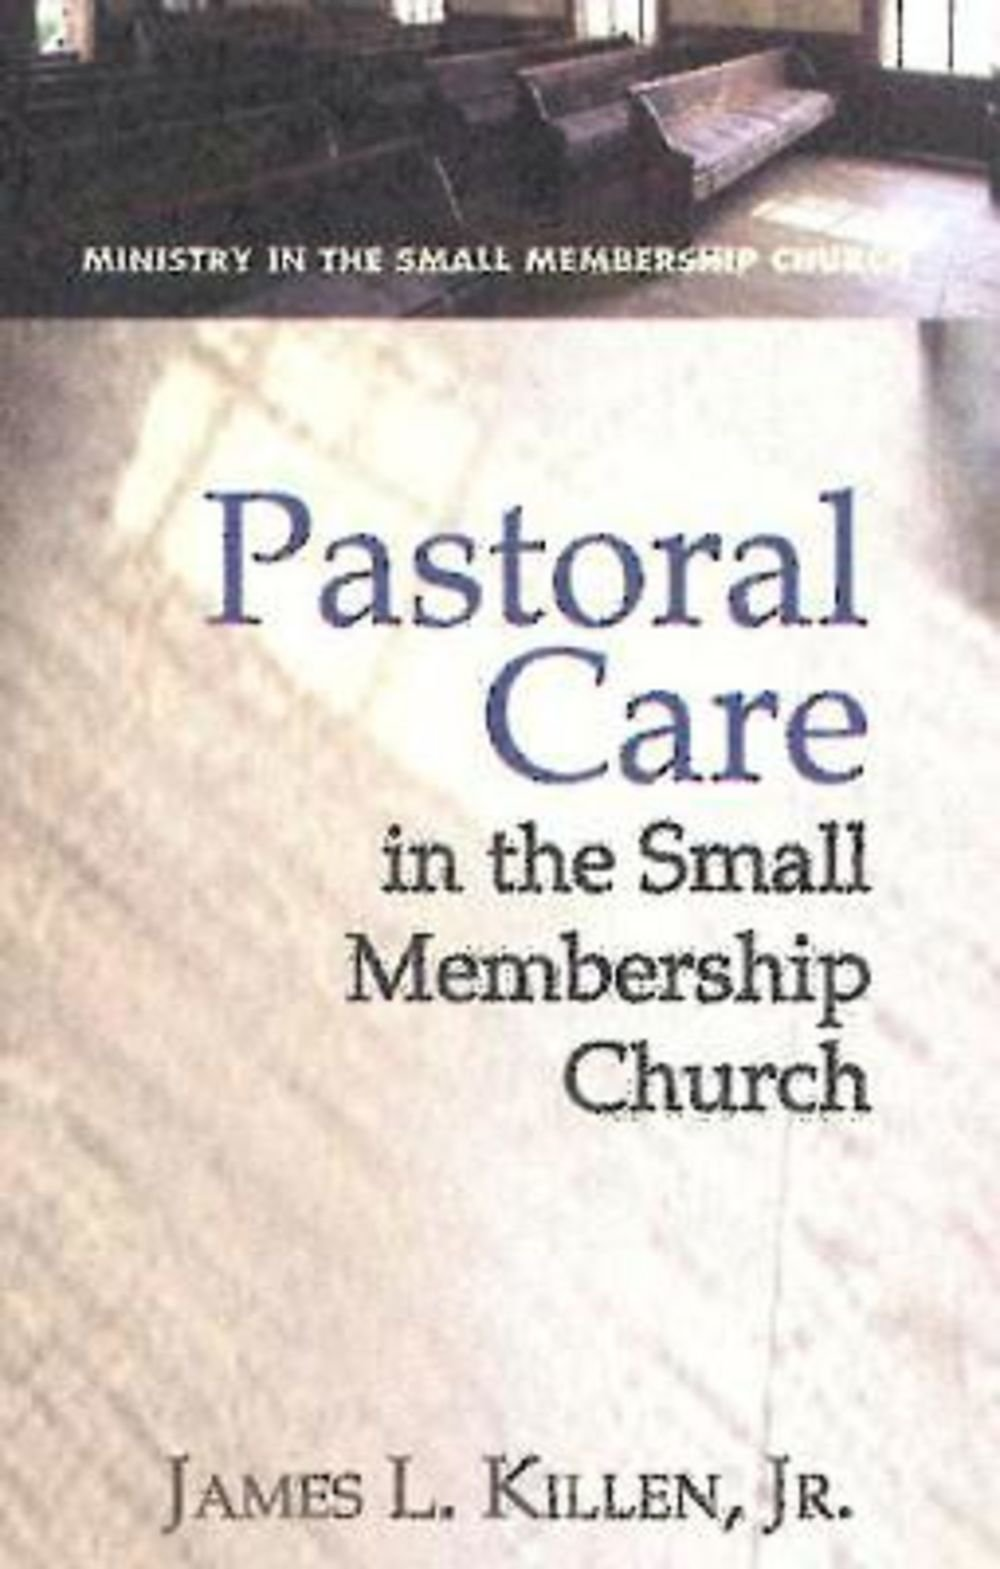 pastoral-care-in-the-small-membership-church-ministry-in-the-small-membership-church